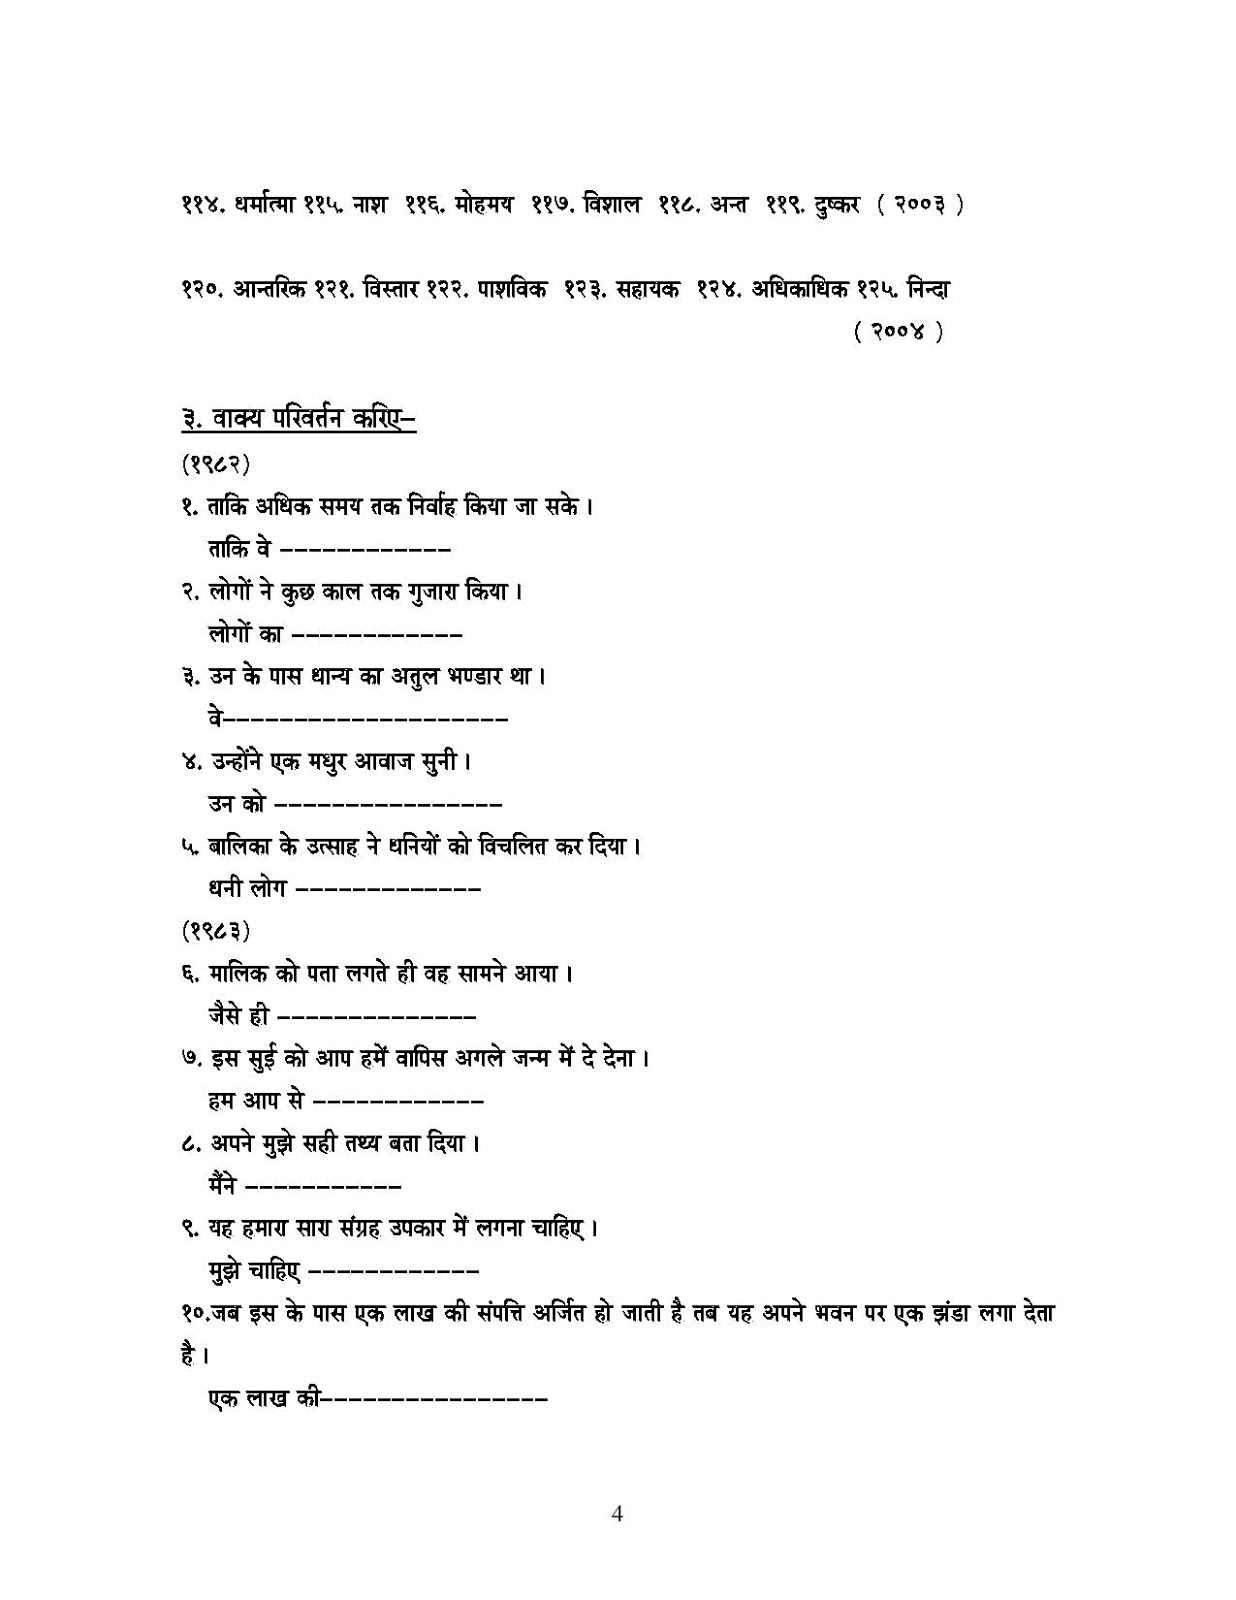 Worksheet Grammar Worksheets Grade 8 hindi grammar worksheets for grade 3 cbse free prehension work sheet collection classes 56 7 8